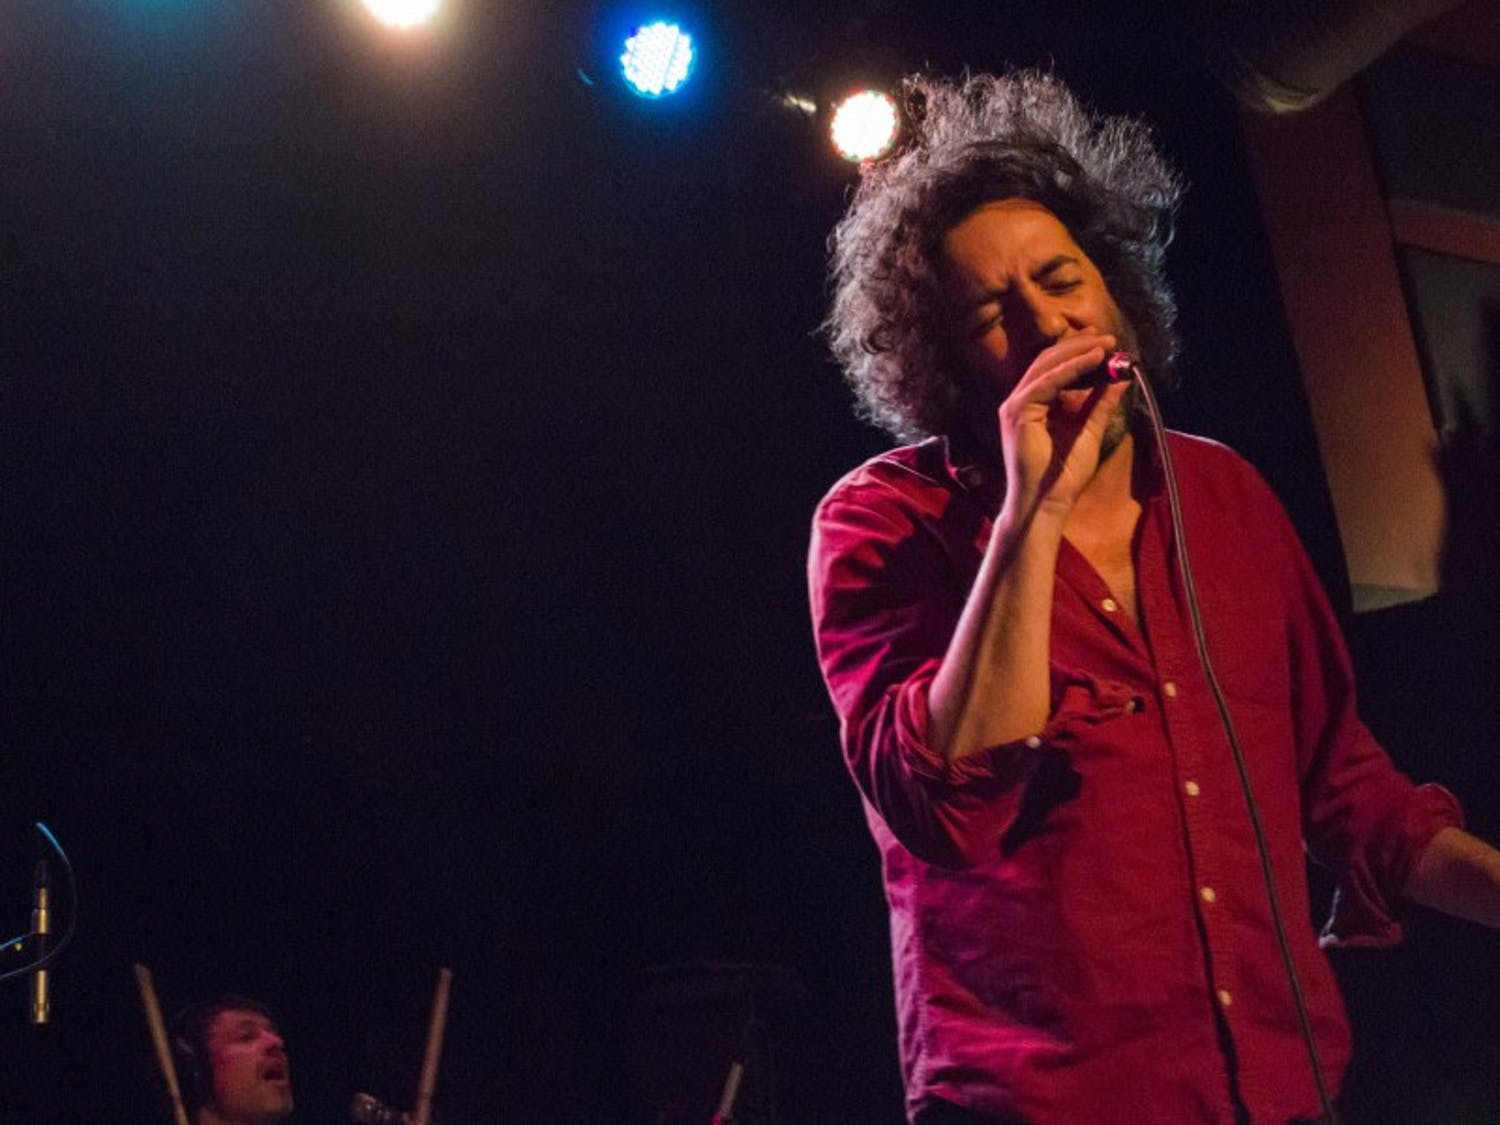 Destroyercompletely immersed the audience intheirperformance with haunting vocals and bouncing rhythms.